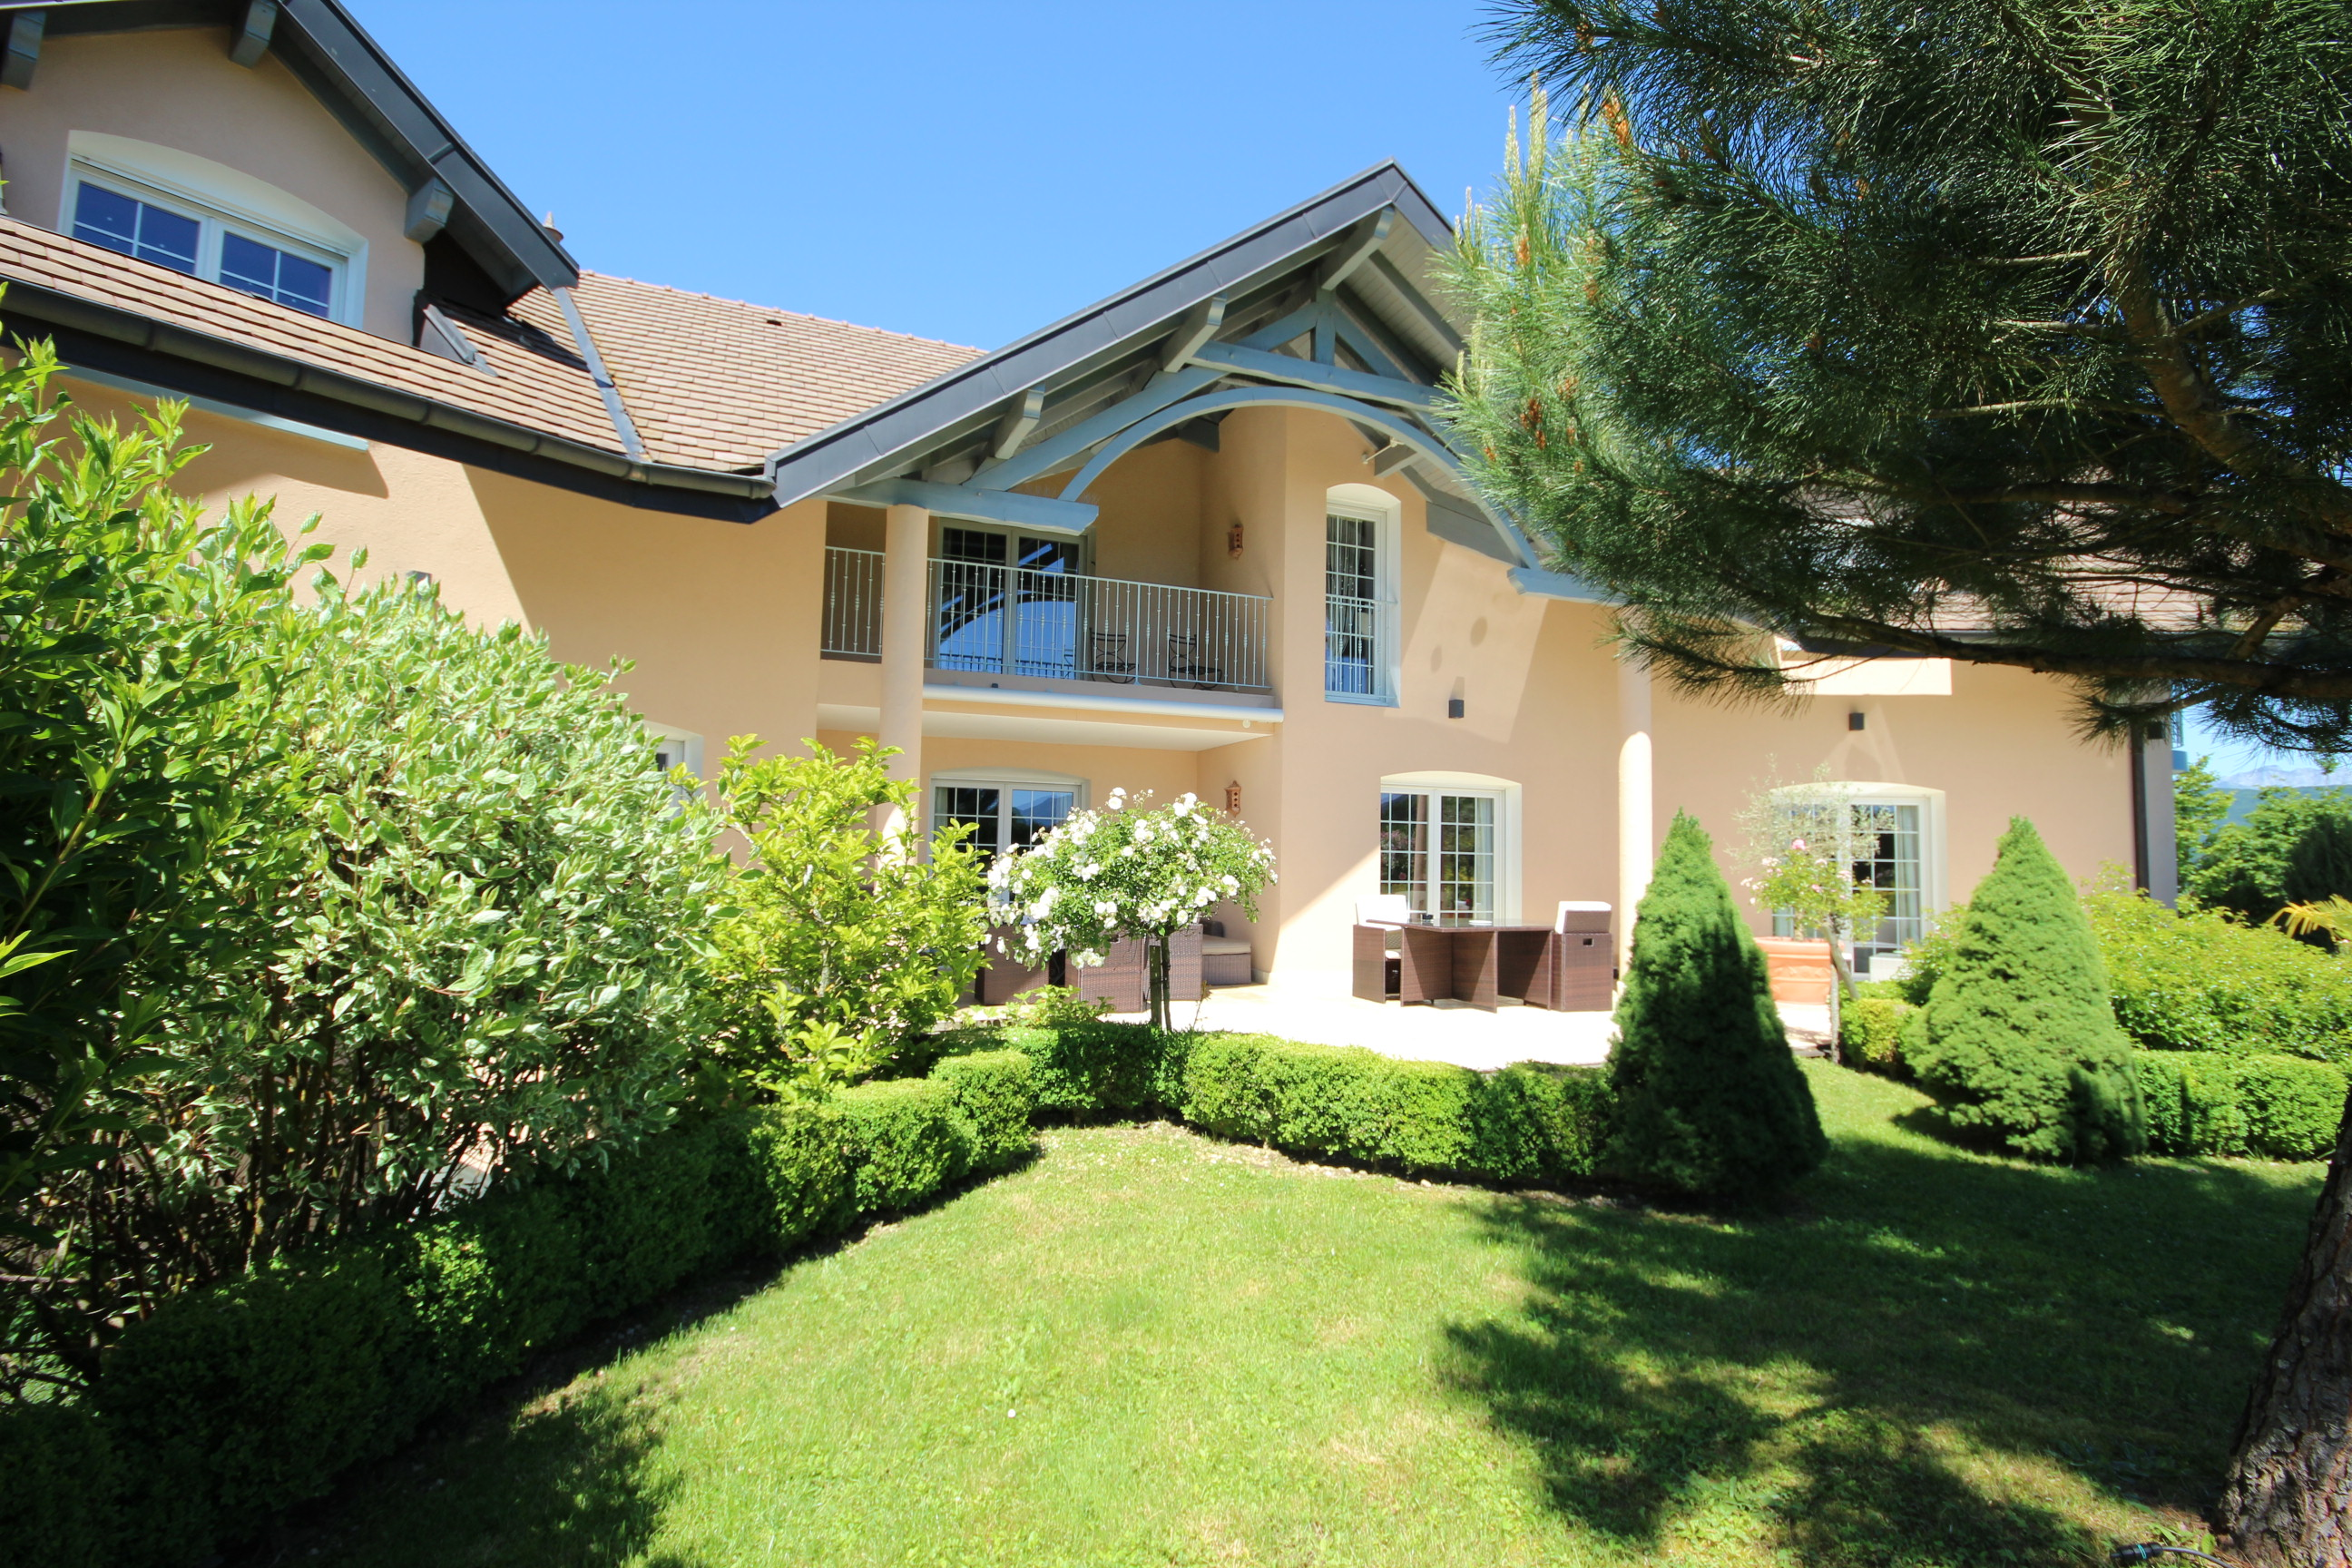 Maison Lac Annecy Beautiful Location Prs Du Lac Duannecy With